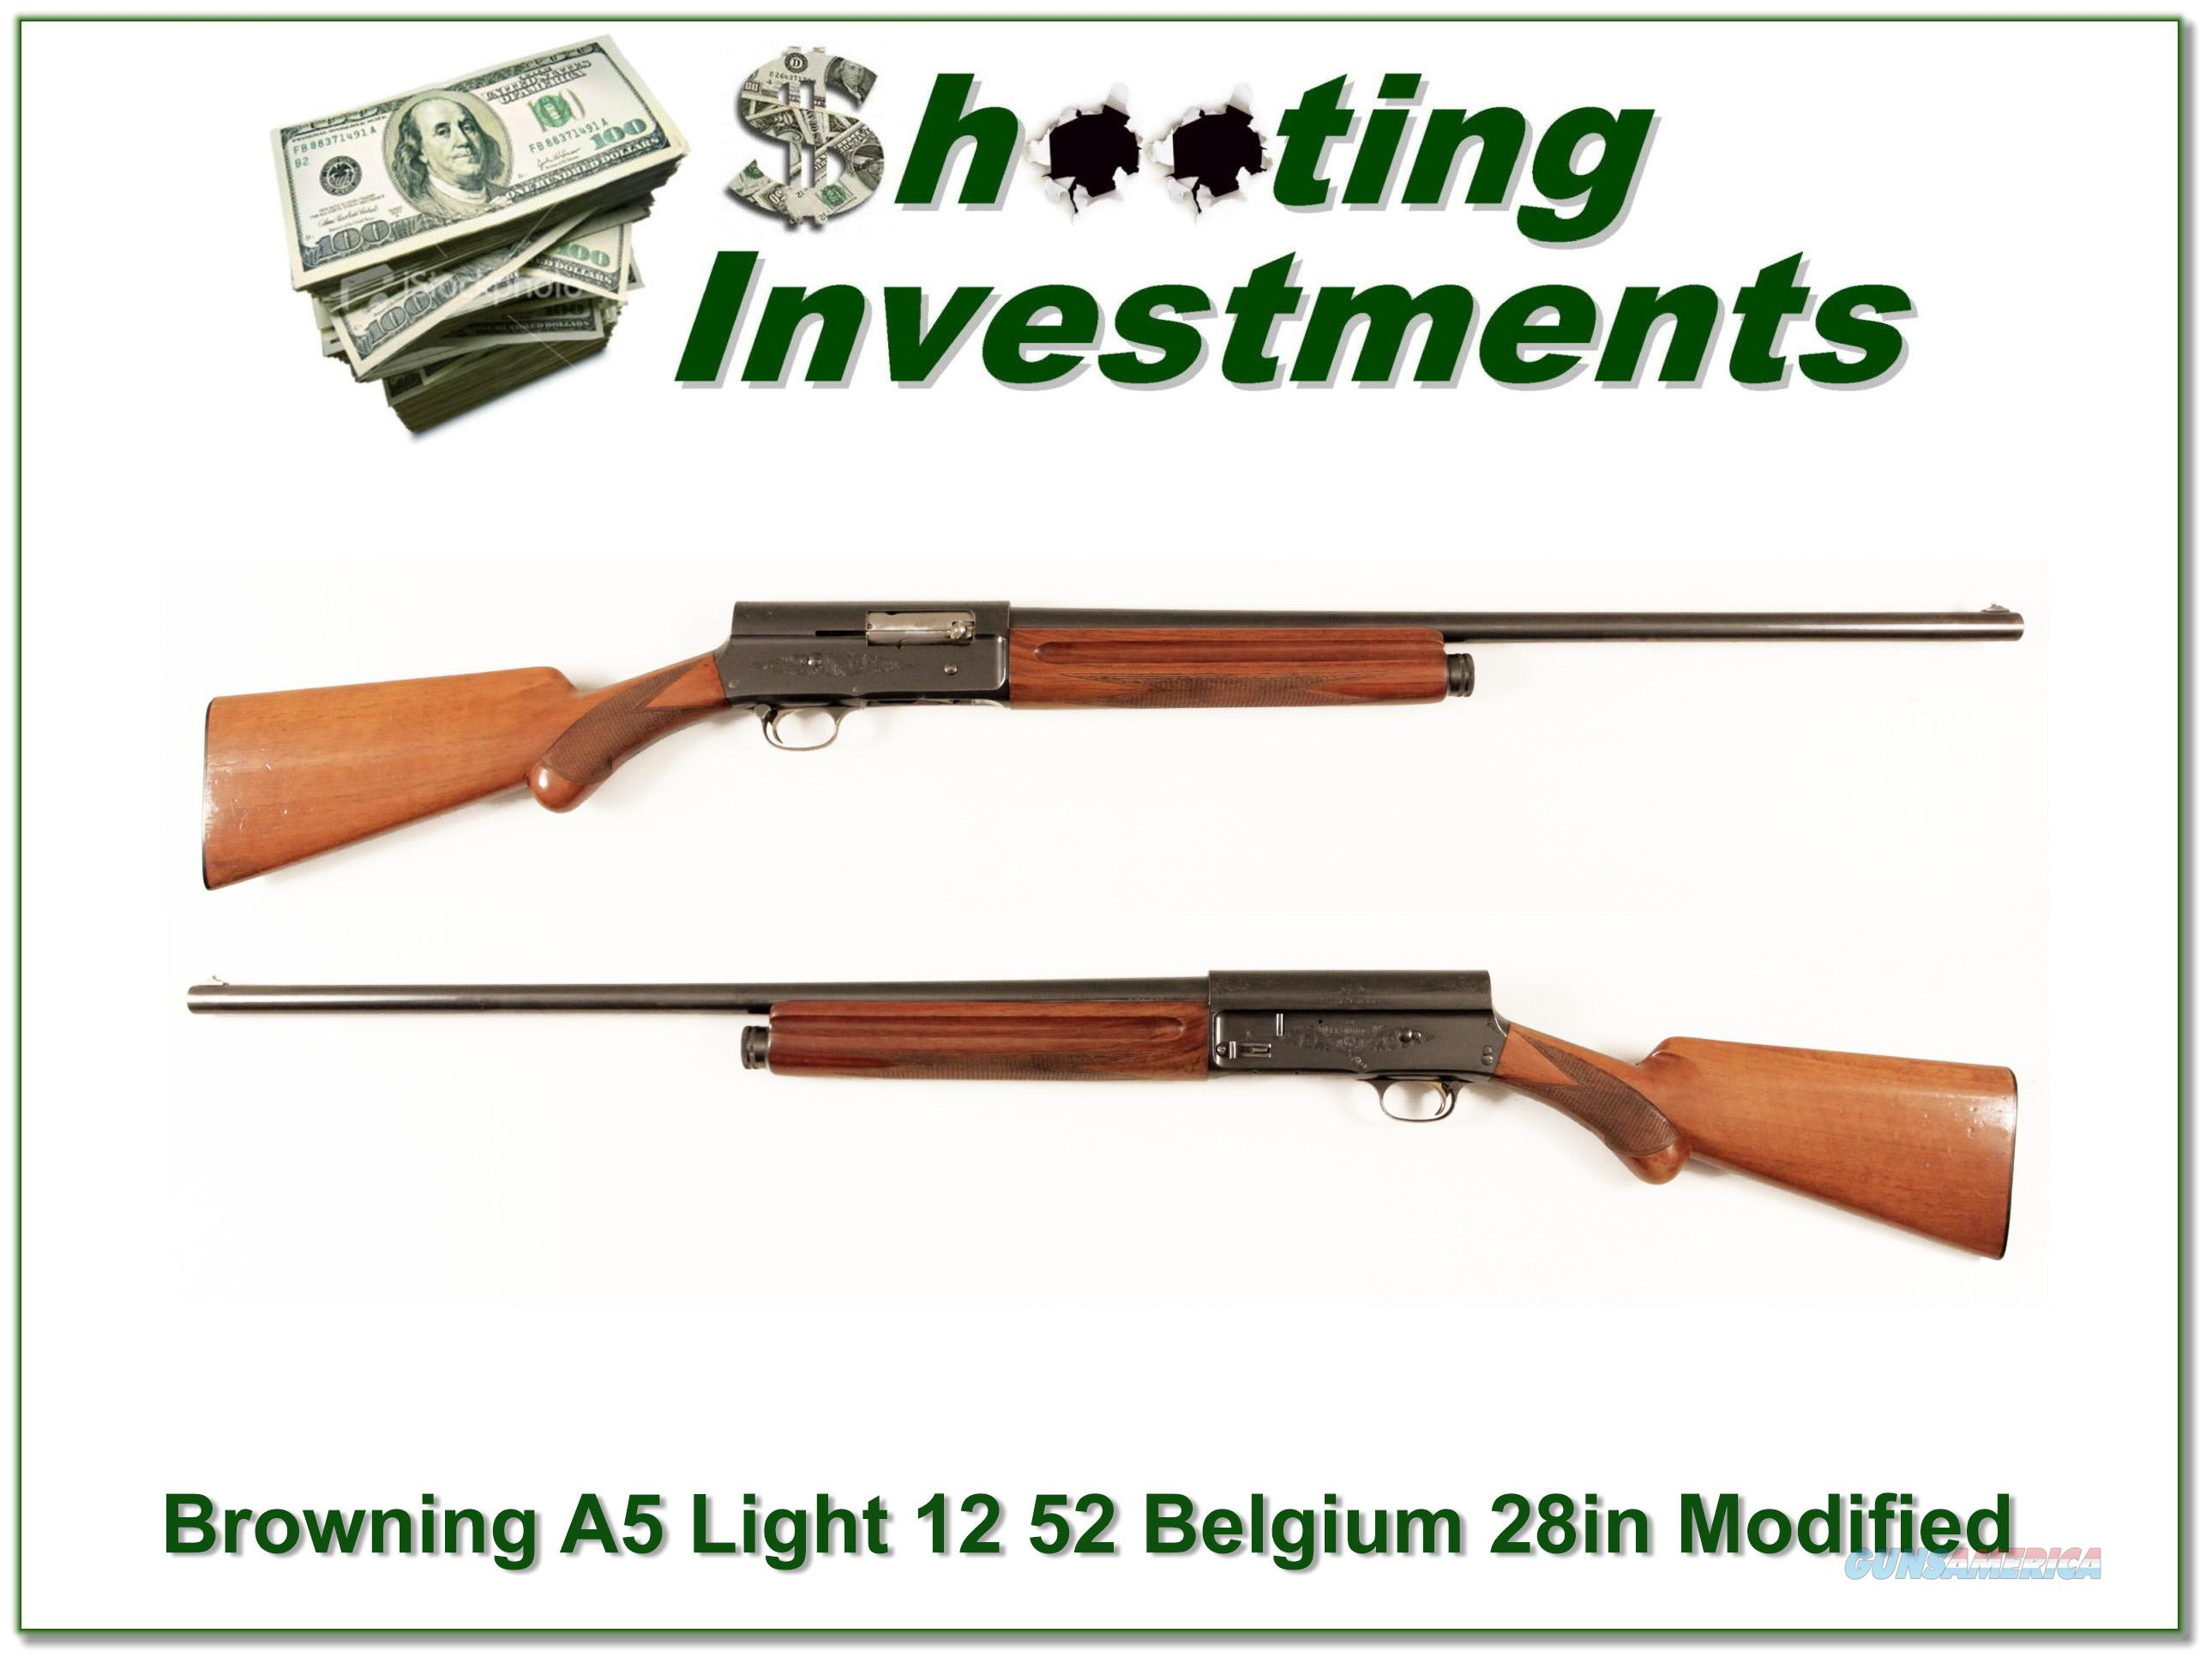 Browning A5 Light 12 50's Belgium 28in Modified  Guns > Shotguns > Browning Shotguns > Autoloaders > Hunting